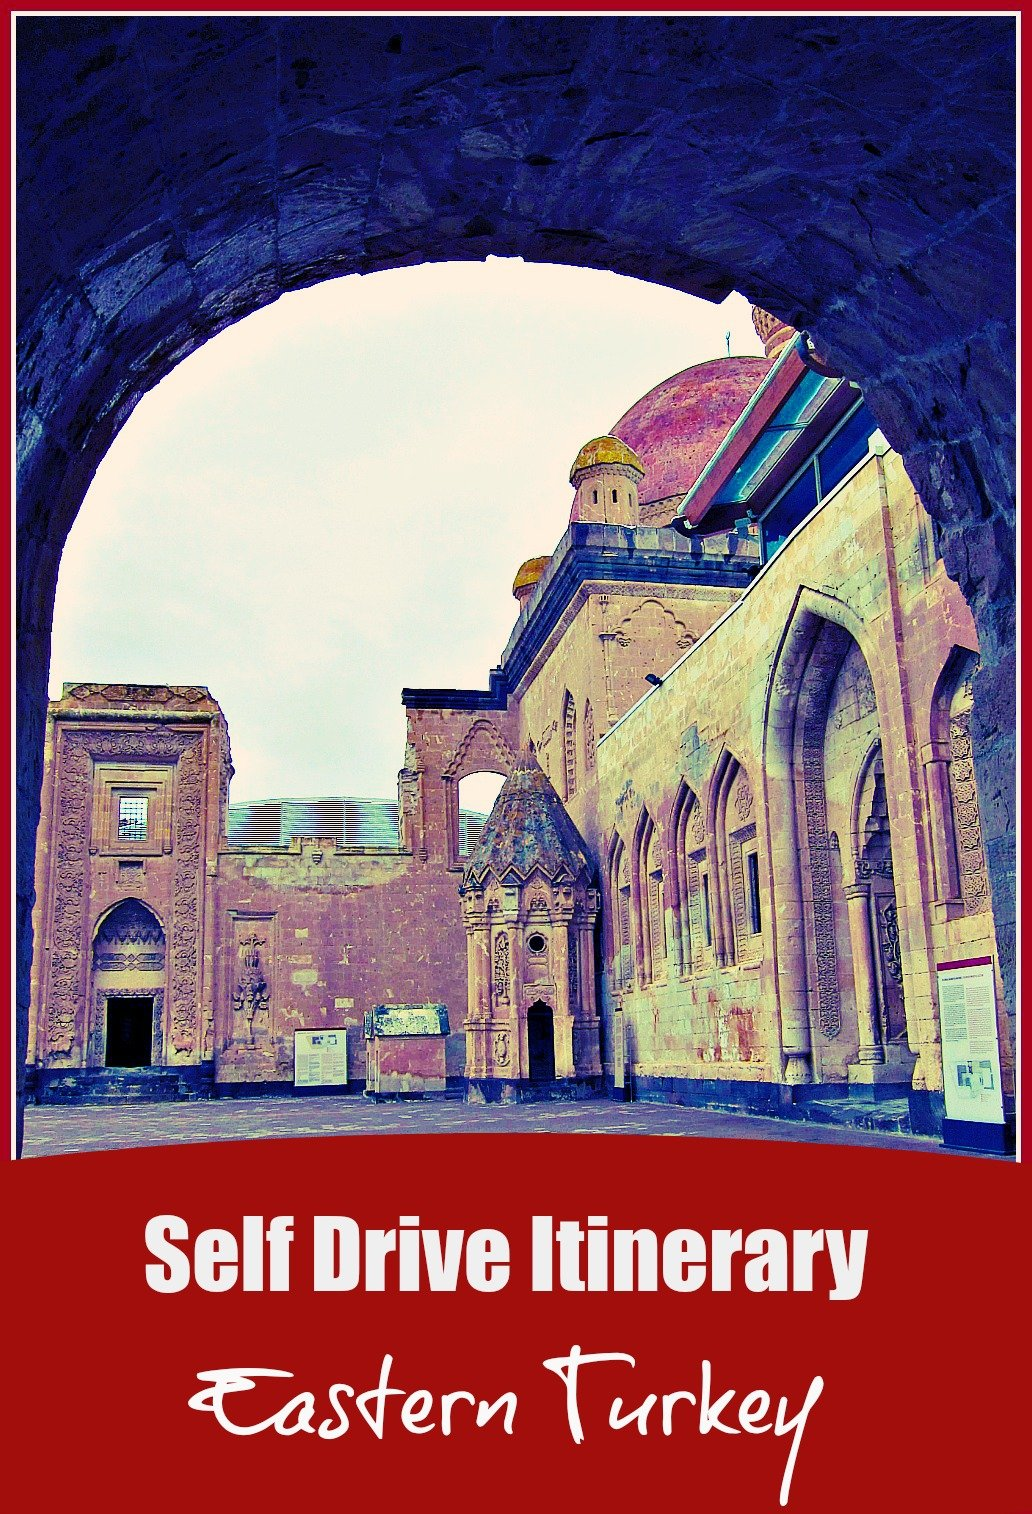 Self Drive Itinerary Eastern Turkey tested by Budget Travel Talk